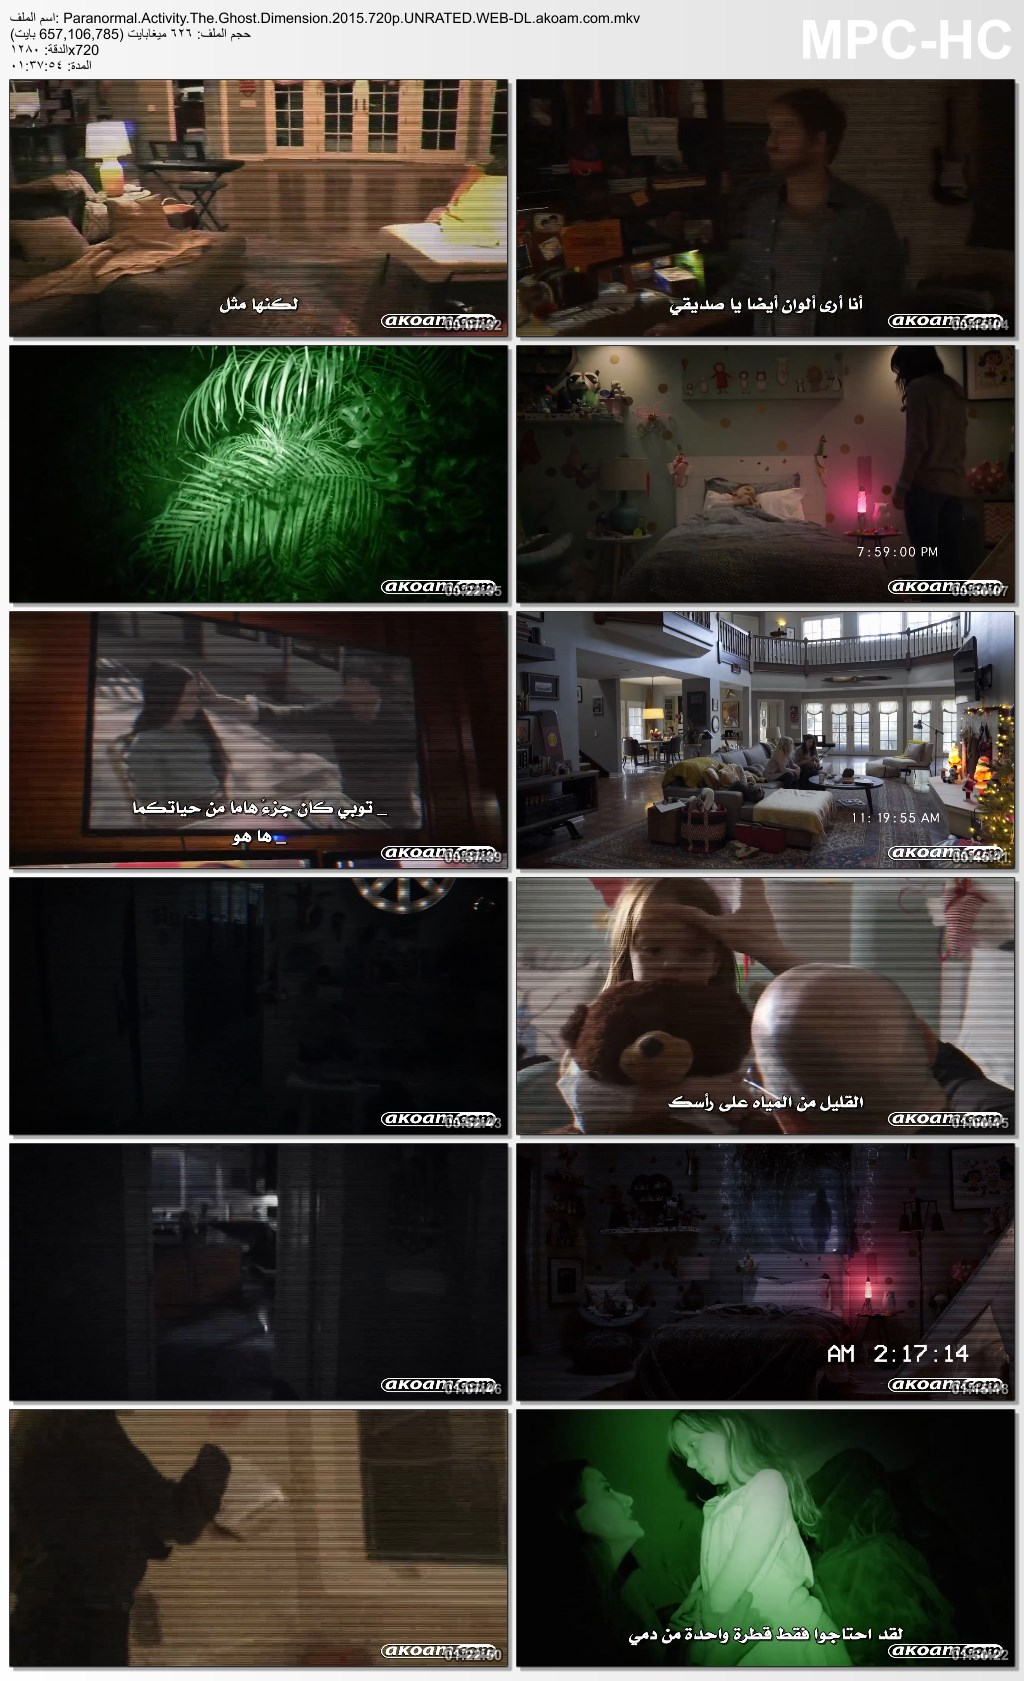 الرعب,Paranormal Activity: The Ghost Dimension,Paranormal Activity,نشاط خوارقي